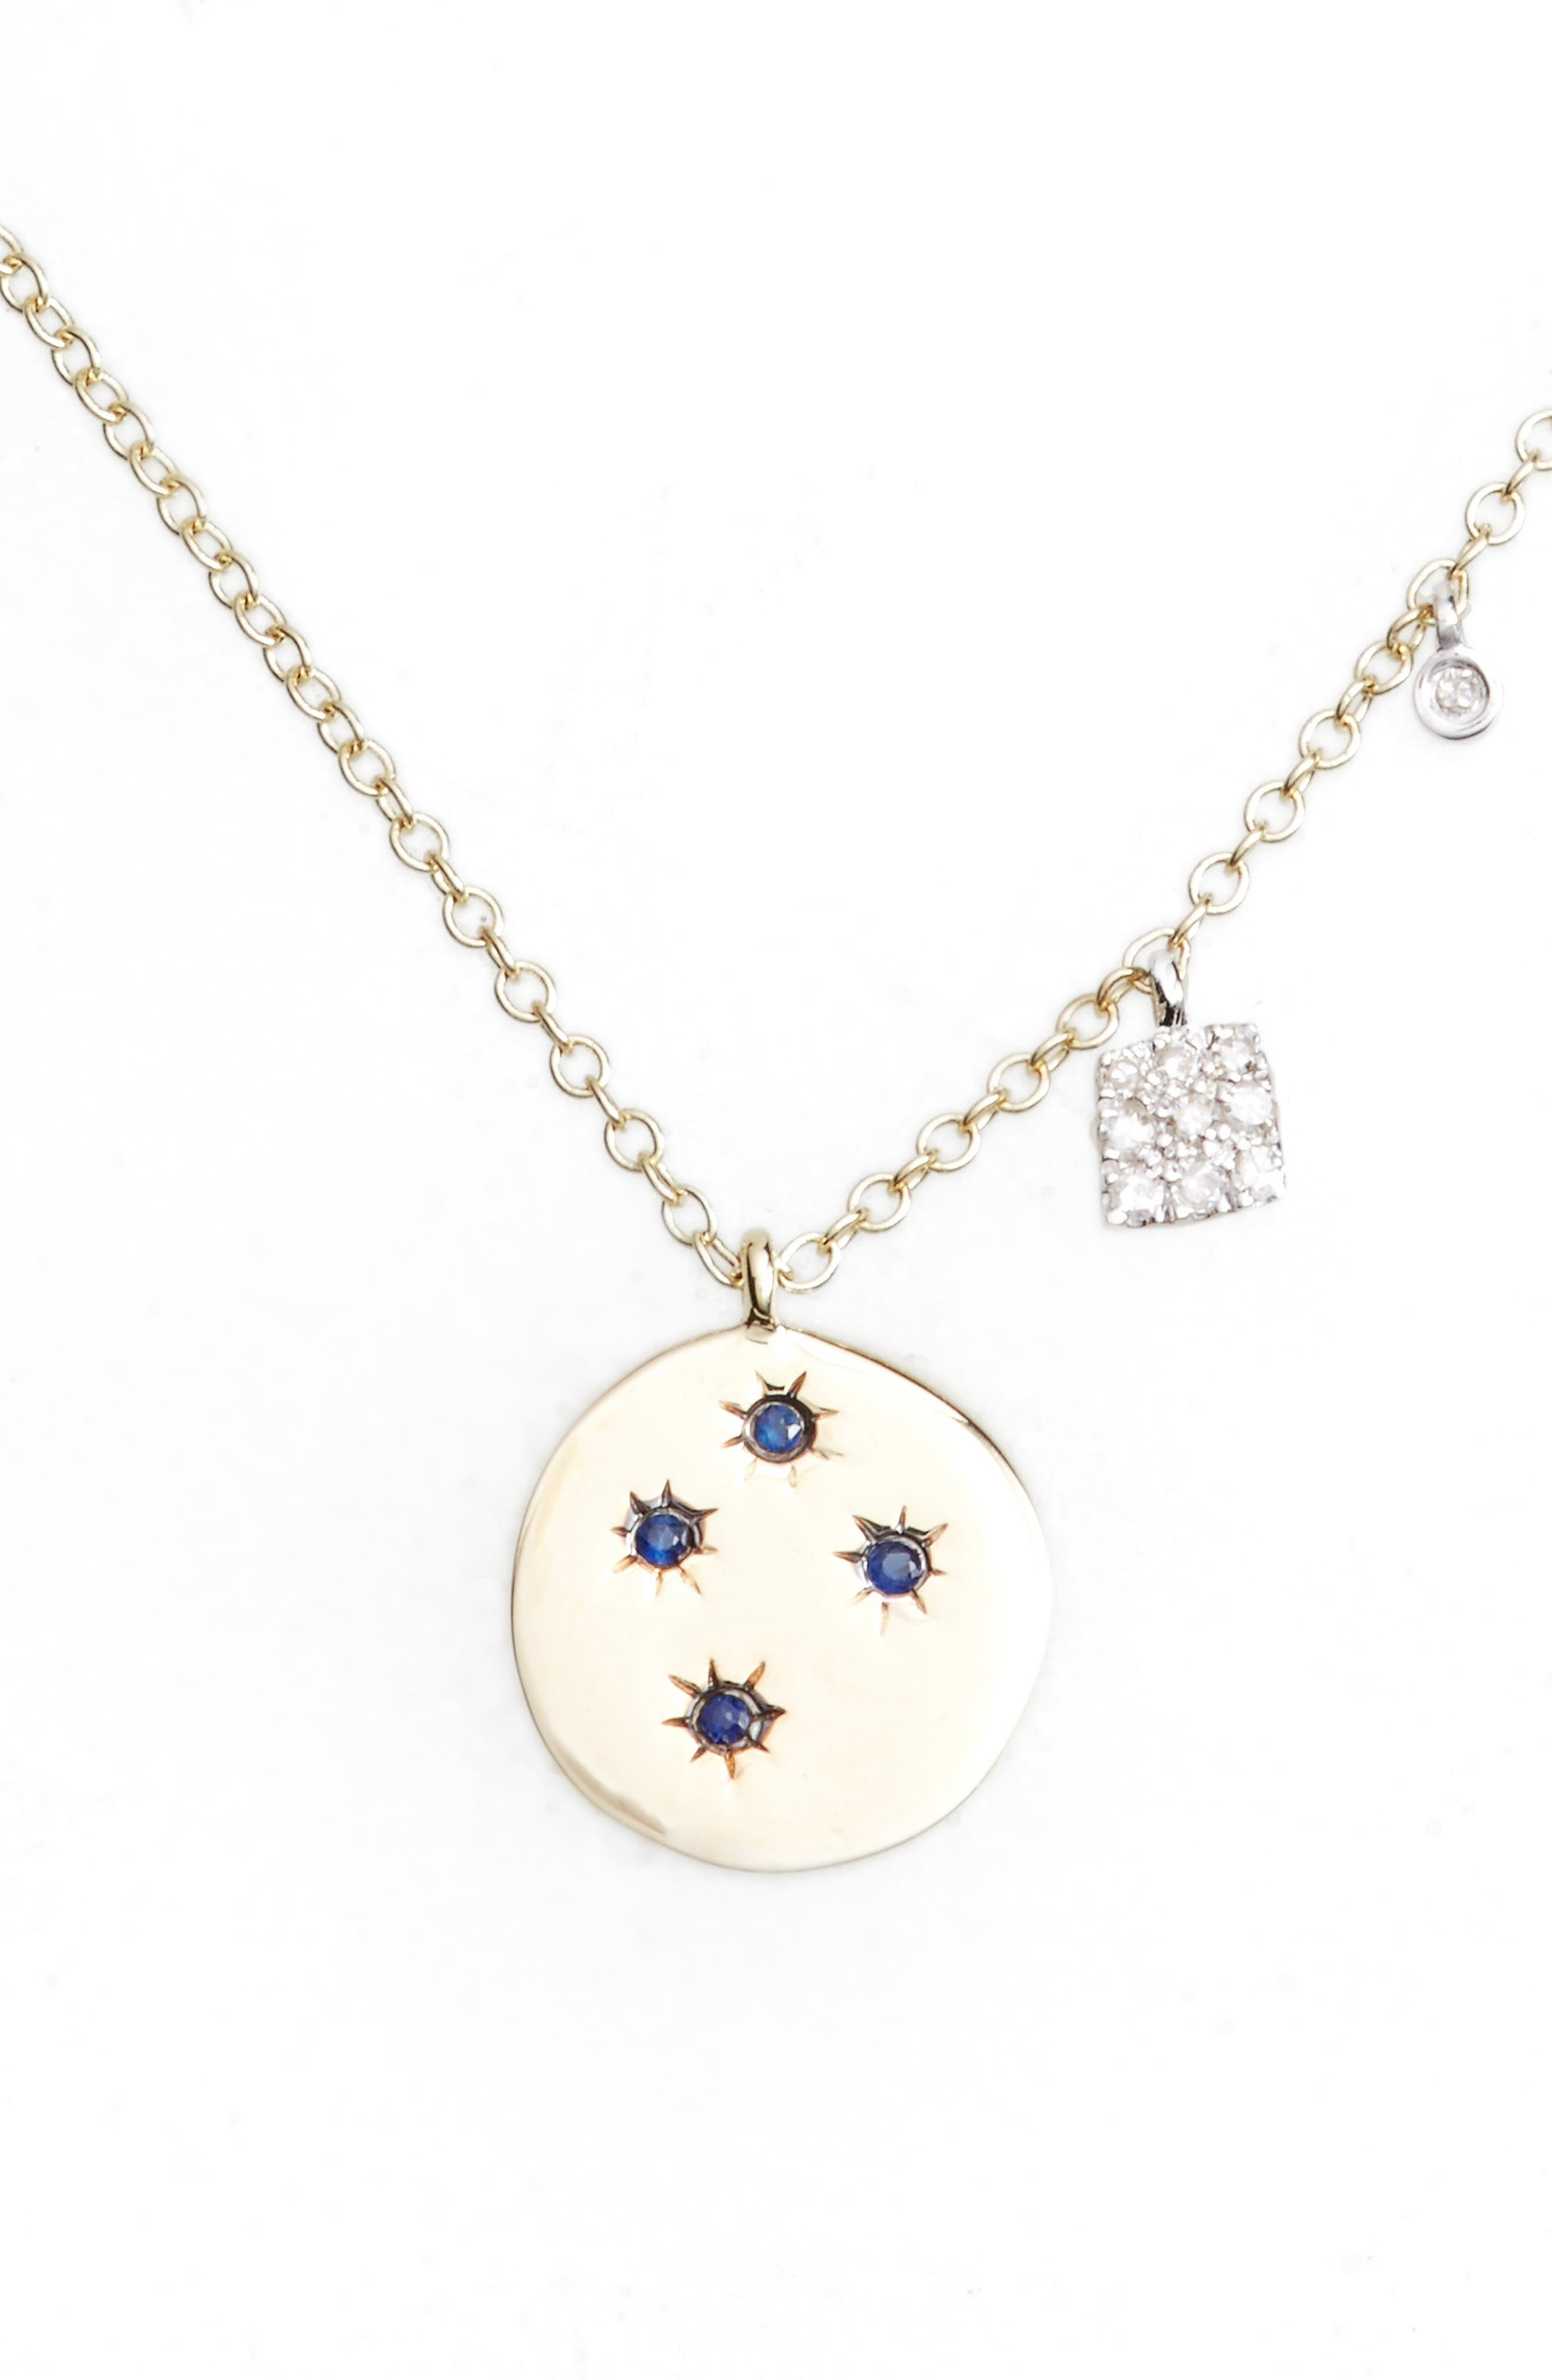 Diamond & Gemstone Pendant Necklace,                             Main thumbnail 1, color,                             YELLOW GOLD/ BLUE SAPPHIRE